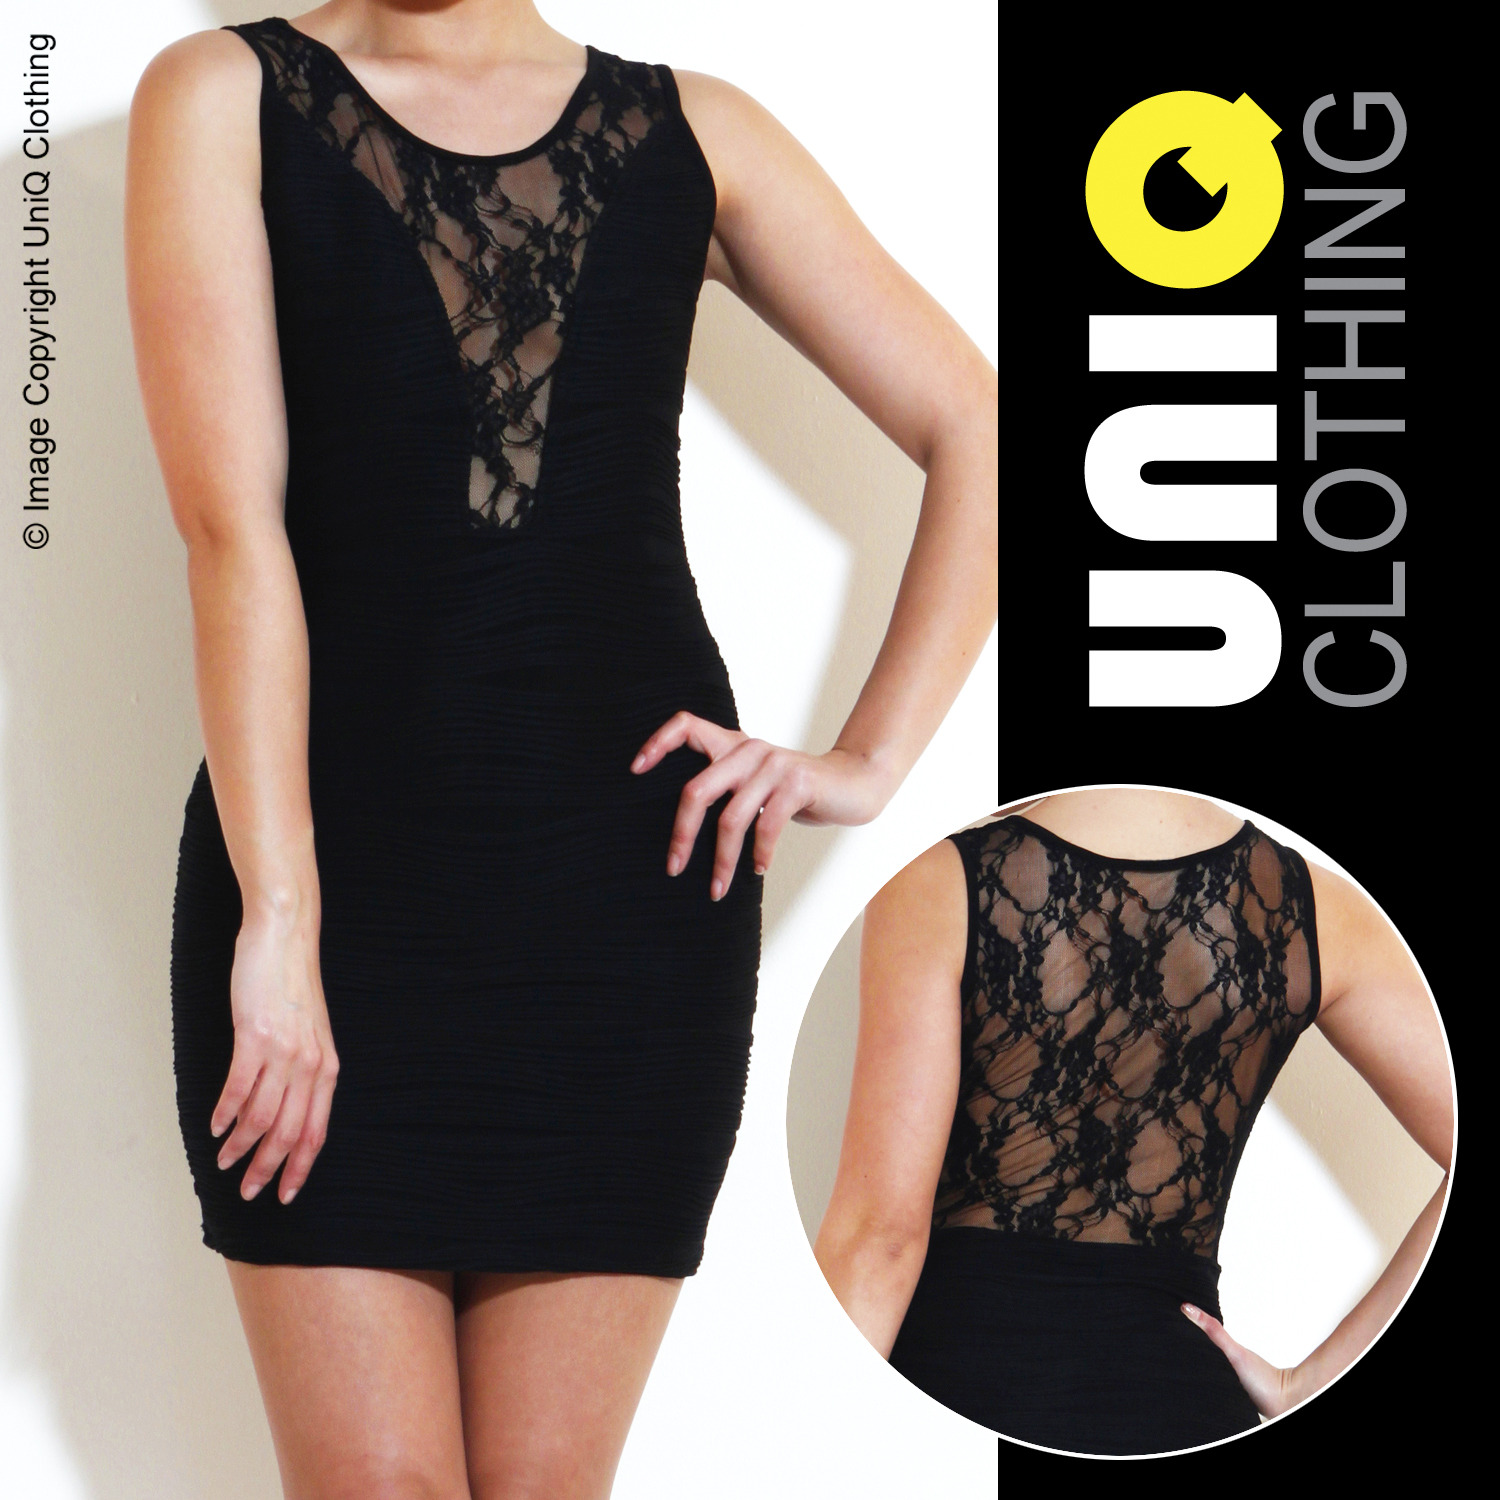 UNIQ-UK Womens DRESS Mini/Evening/Party/Short/Designer/Cocktail L69 Enlarged Preview